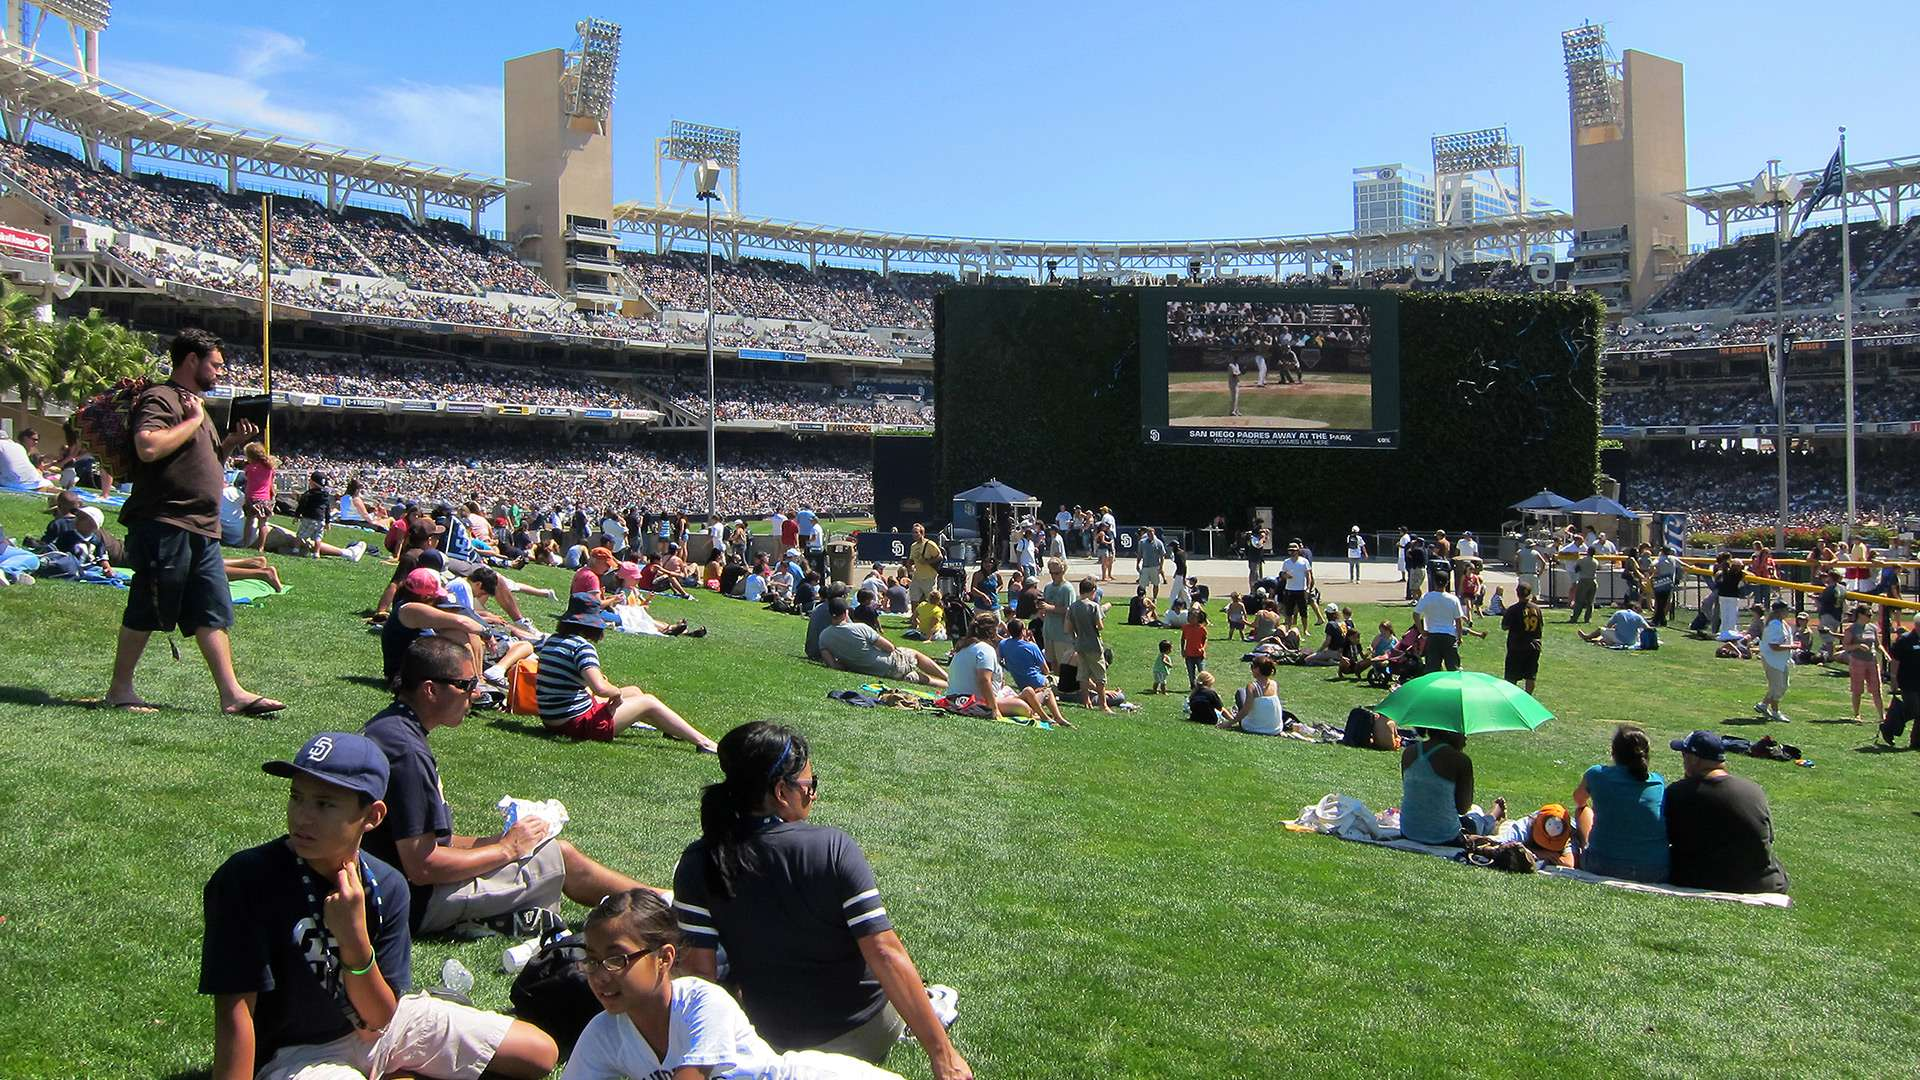 Petco Ballpark 'Park at the Park' Primary 5